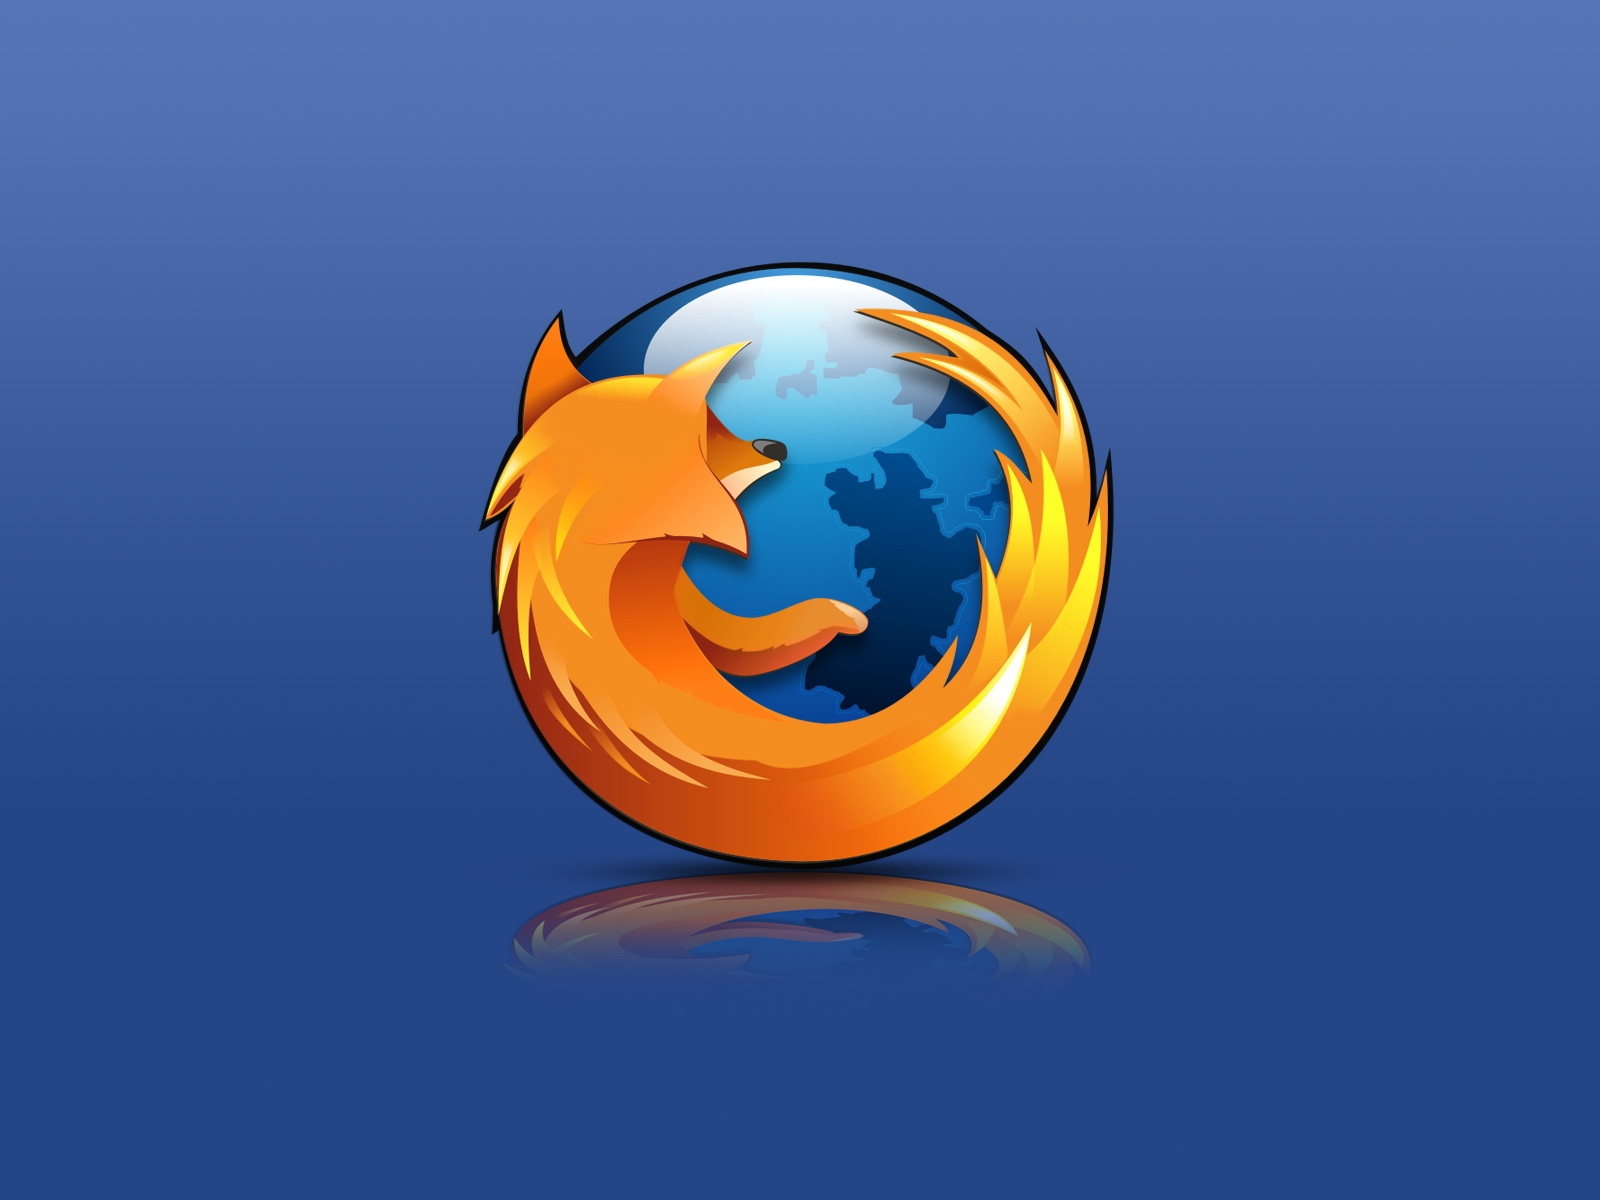 1600x1200 Mozilla Firefox desktop PC and Mac wallpaper 1600x1200